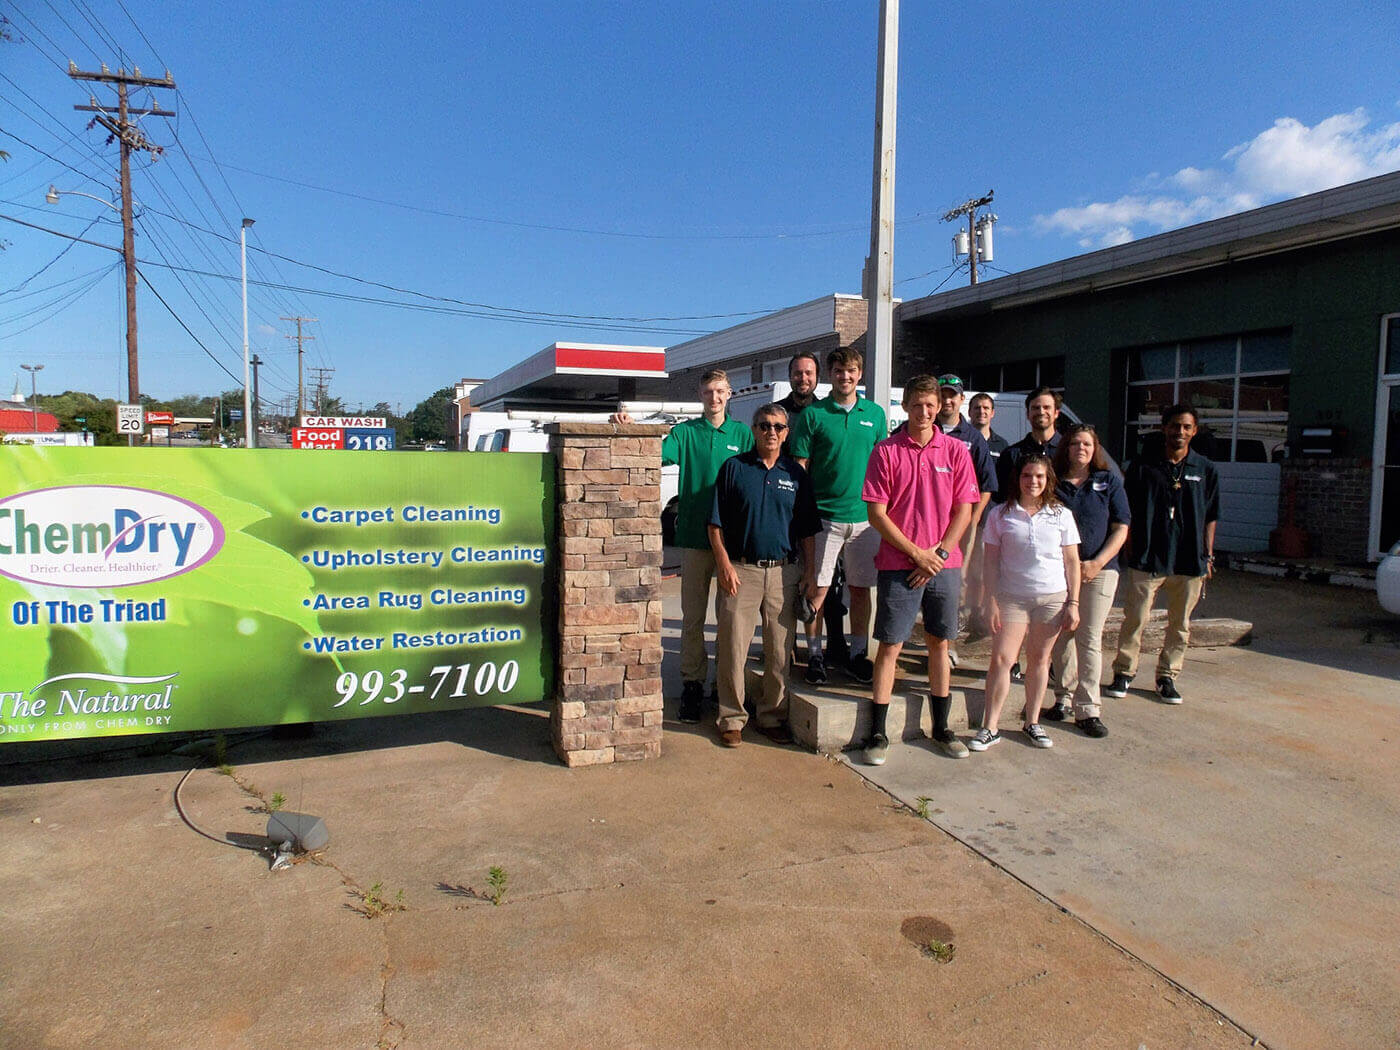 chemdry of greensboro staff in front of building with sign